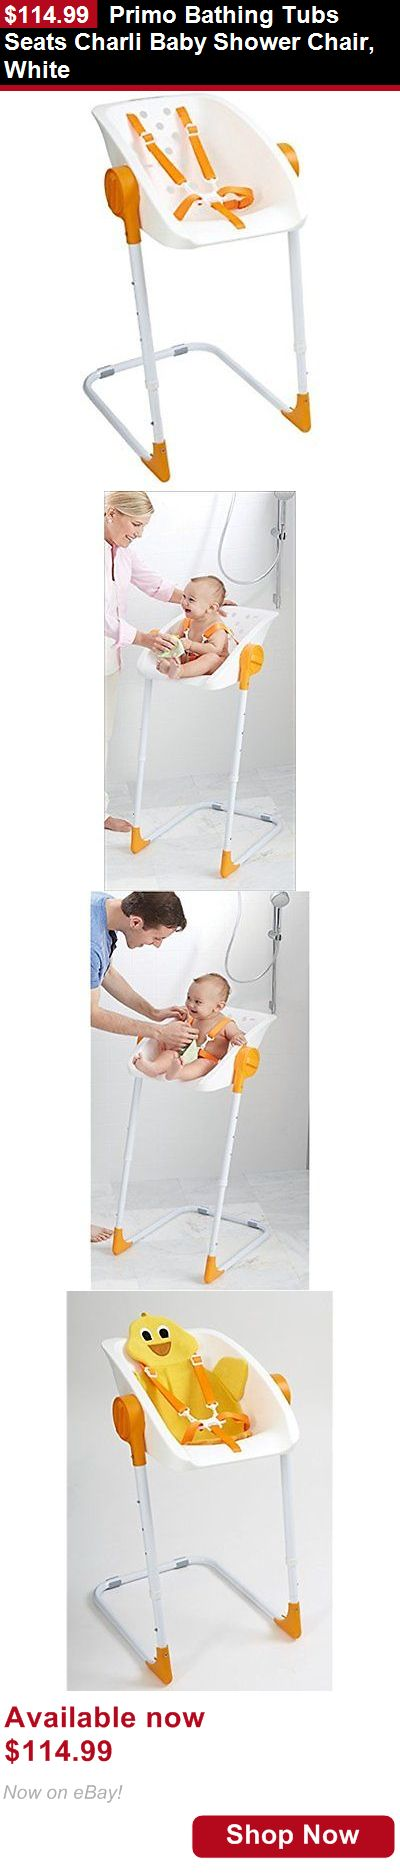 Baby Bath Tub Seats And Rings: Primo Bathing Tubs Seats Charli Baby Shower Chair, White BUY IT NOW ONLY: $114.99